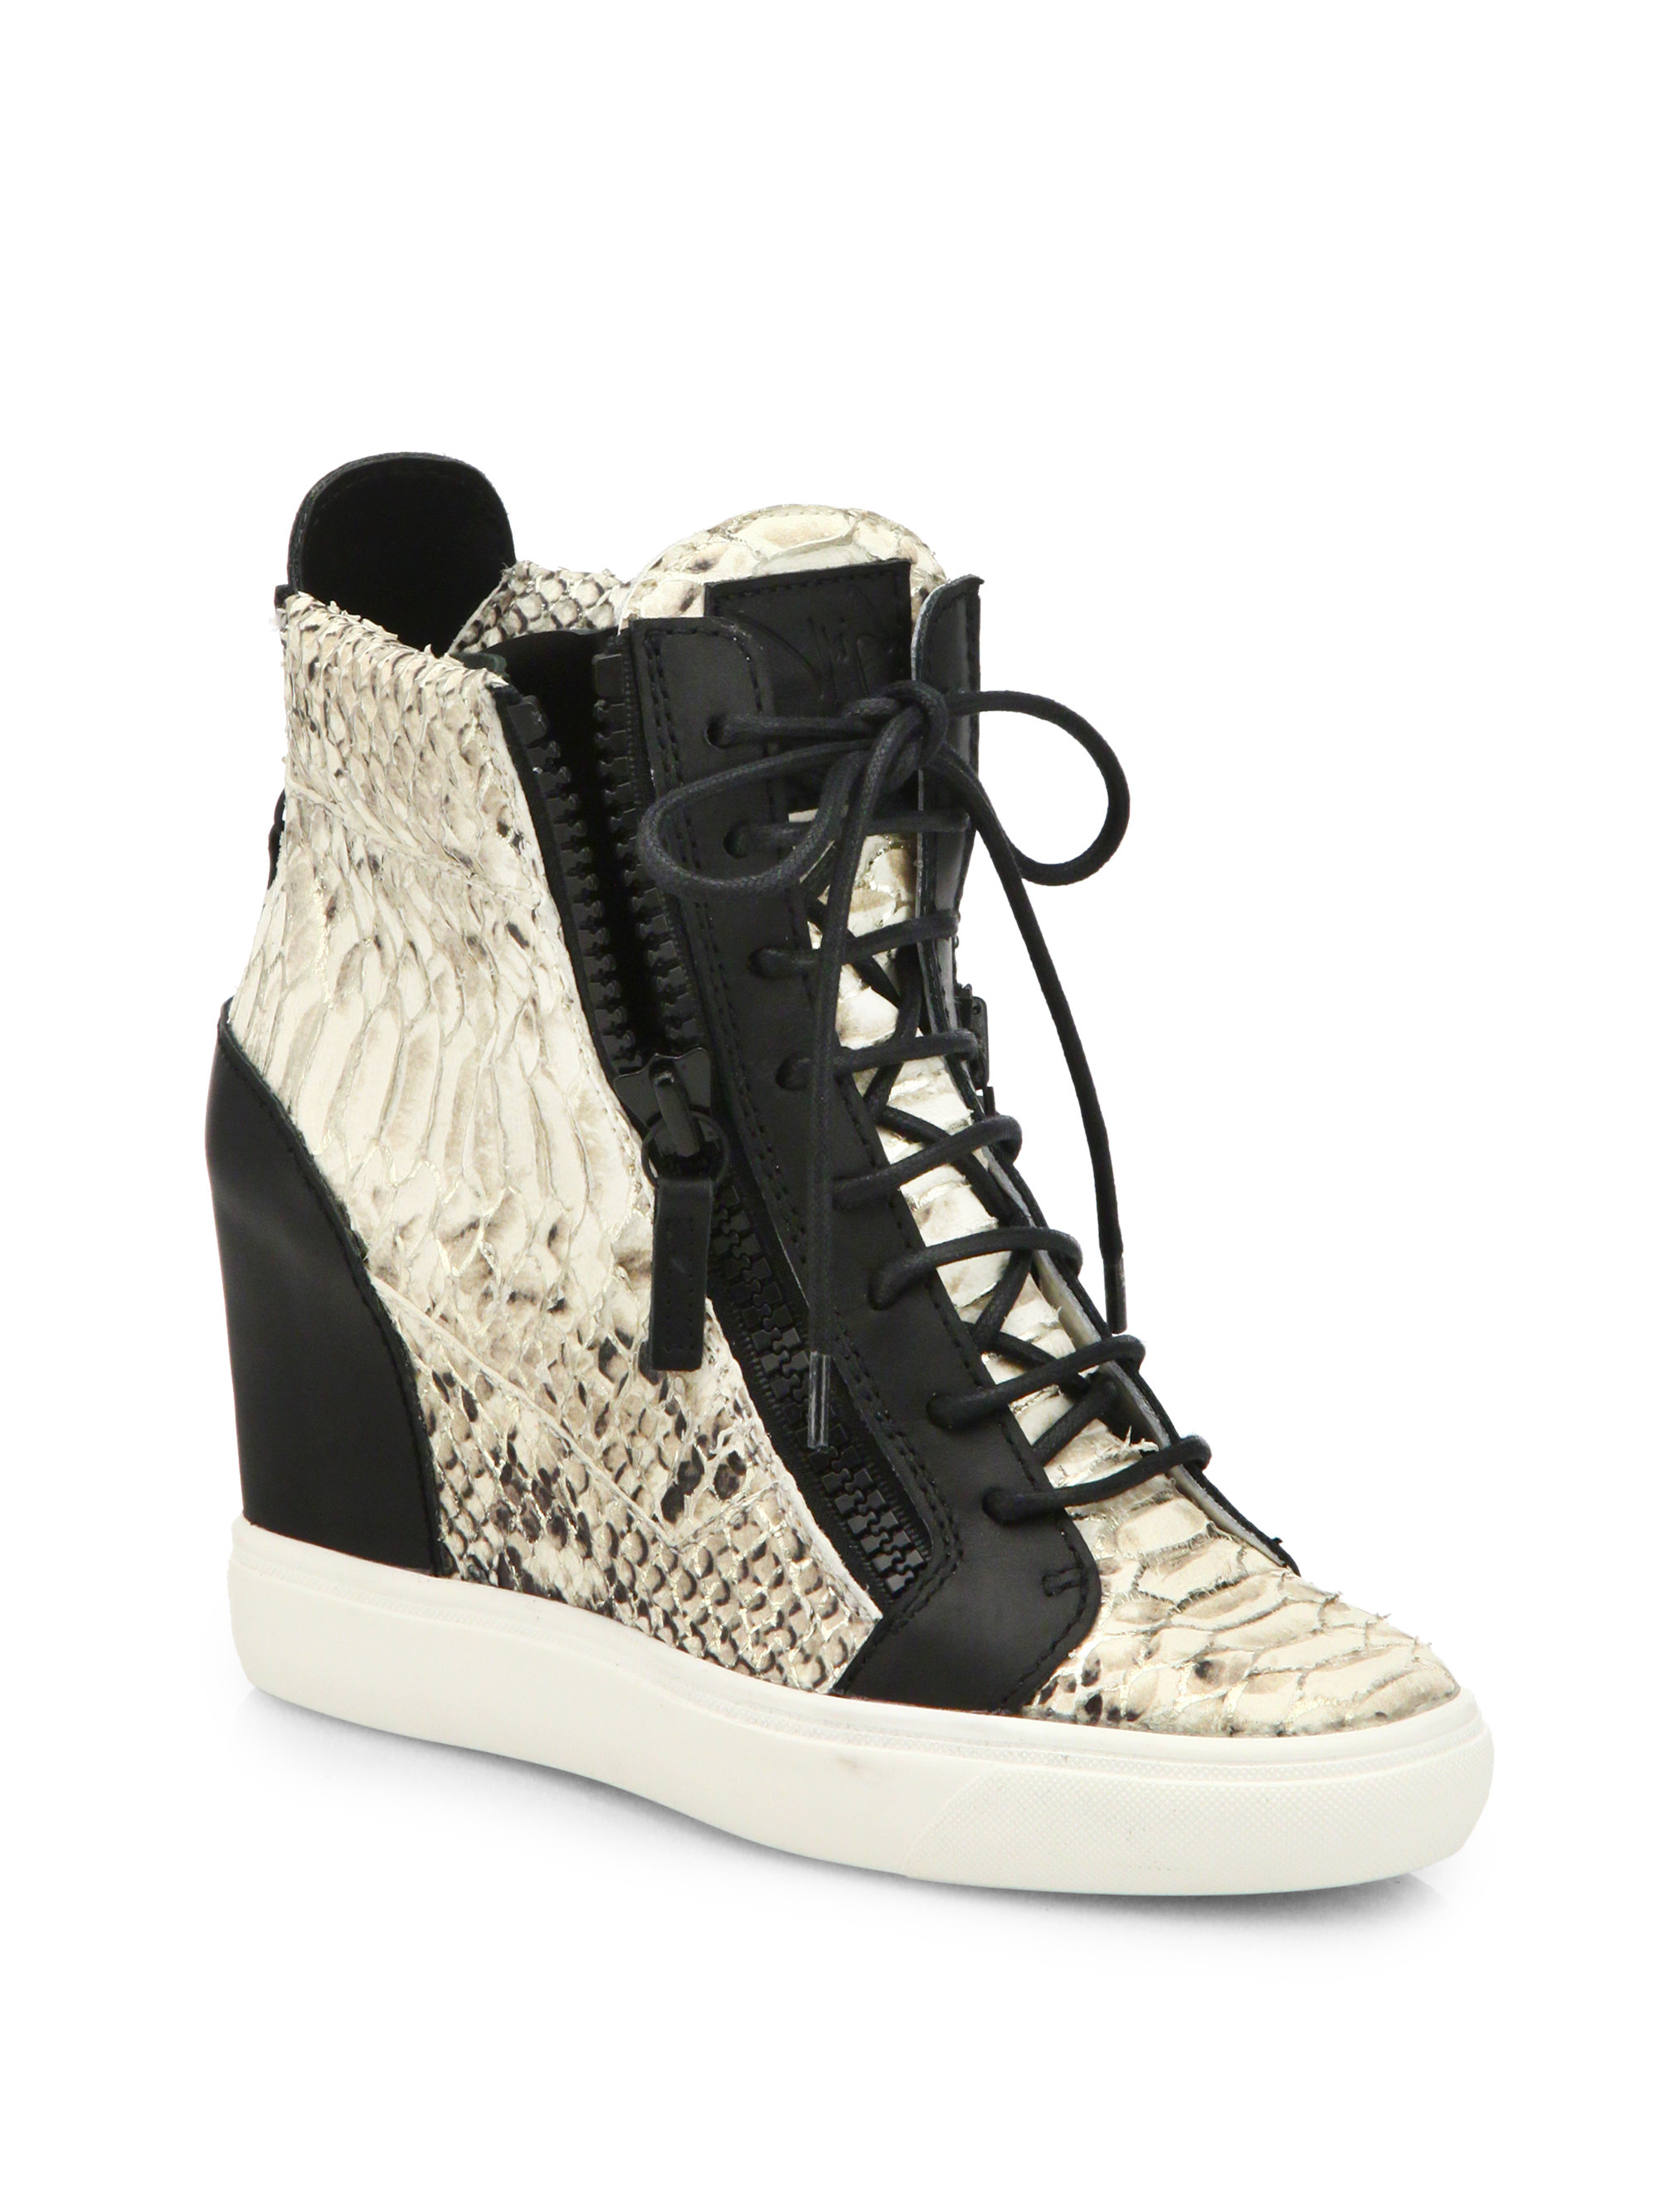 Lyst Giuseppe Zanotti Python Amp Leather Wedge Sneakers In